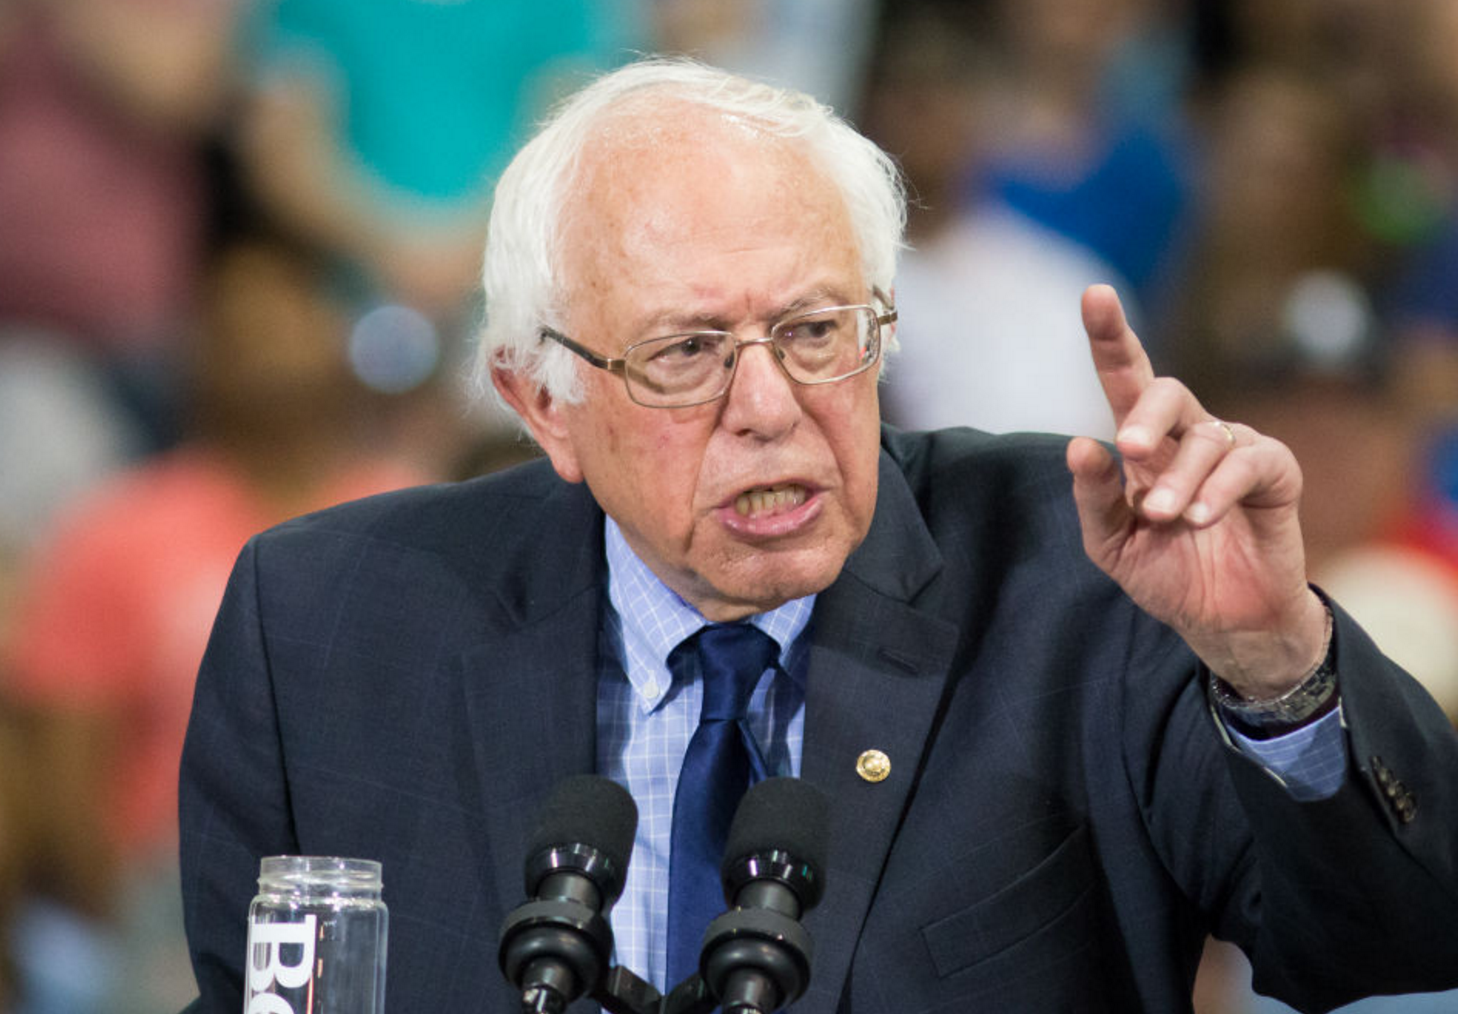 Bernie Sanders Introduces Bill To Allow Prescription Purchases From Canada, Lower Prices